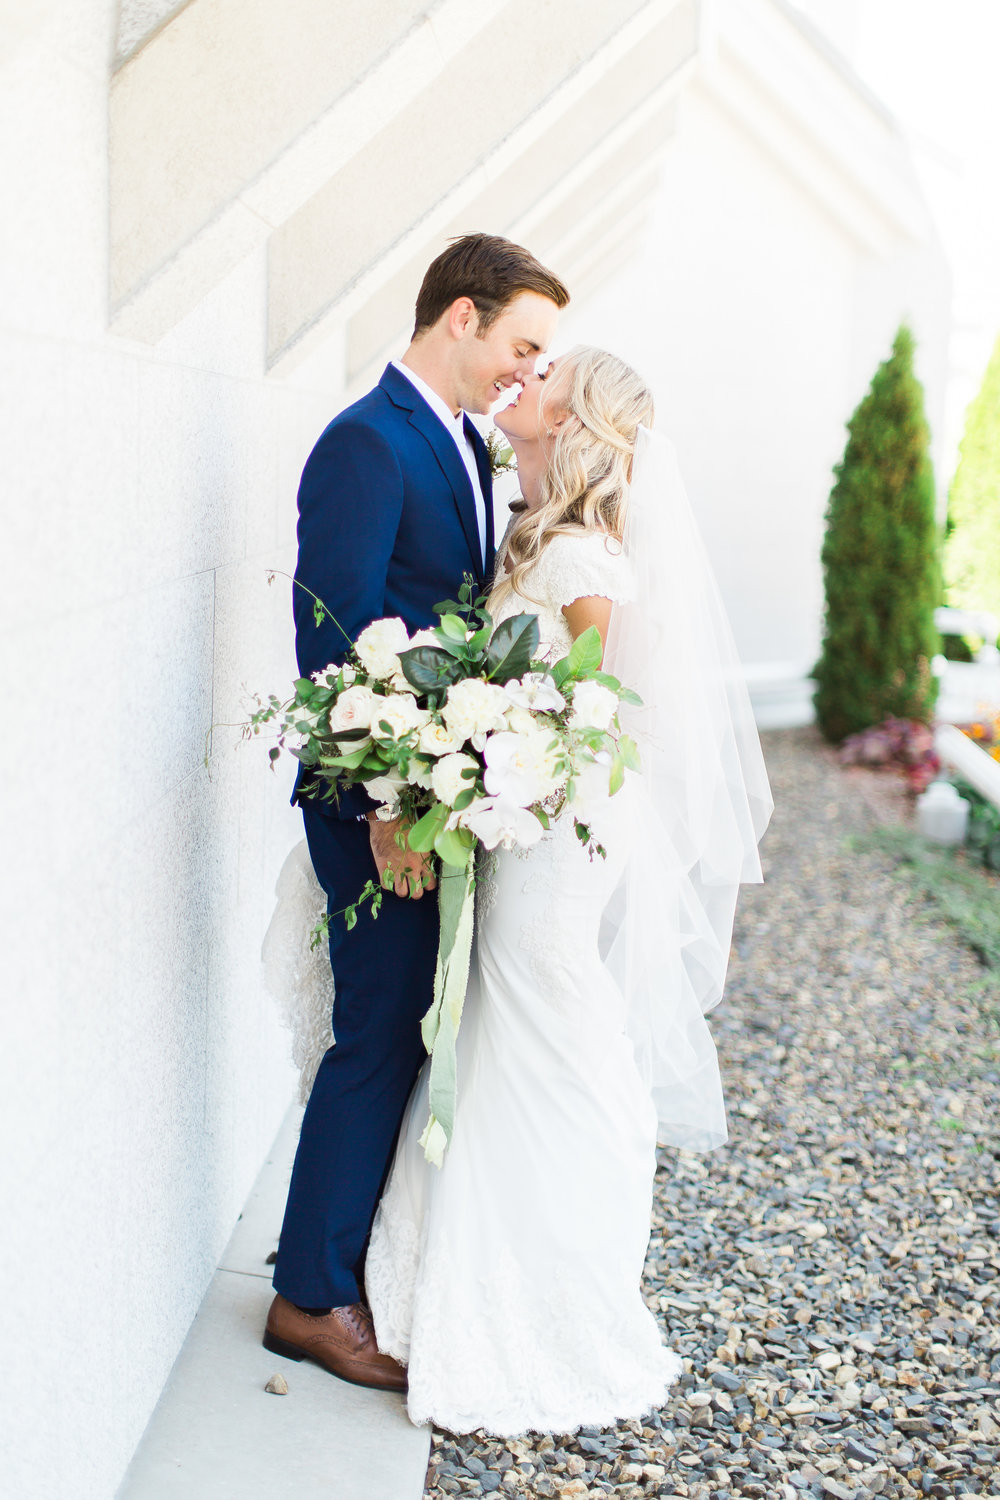 Ira and Lucy Wedding Planner, Abbey Kyhl Photography